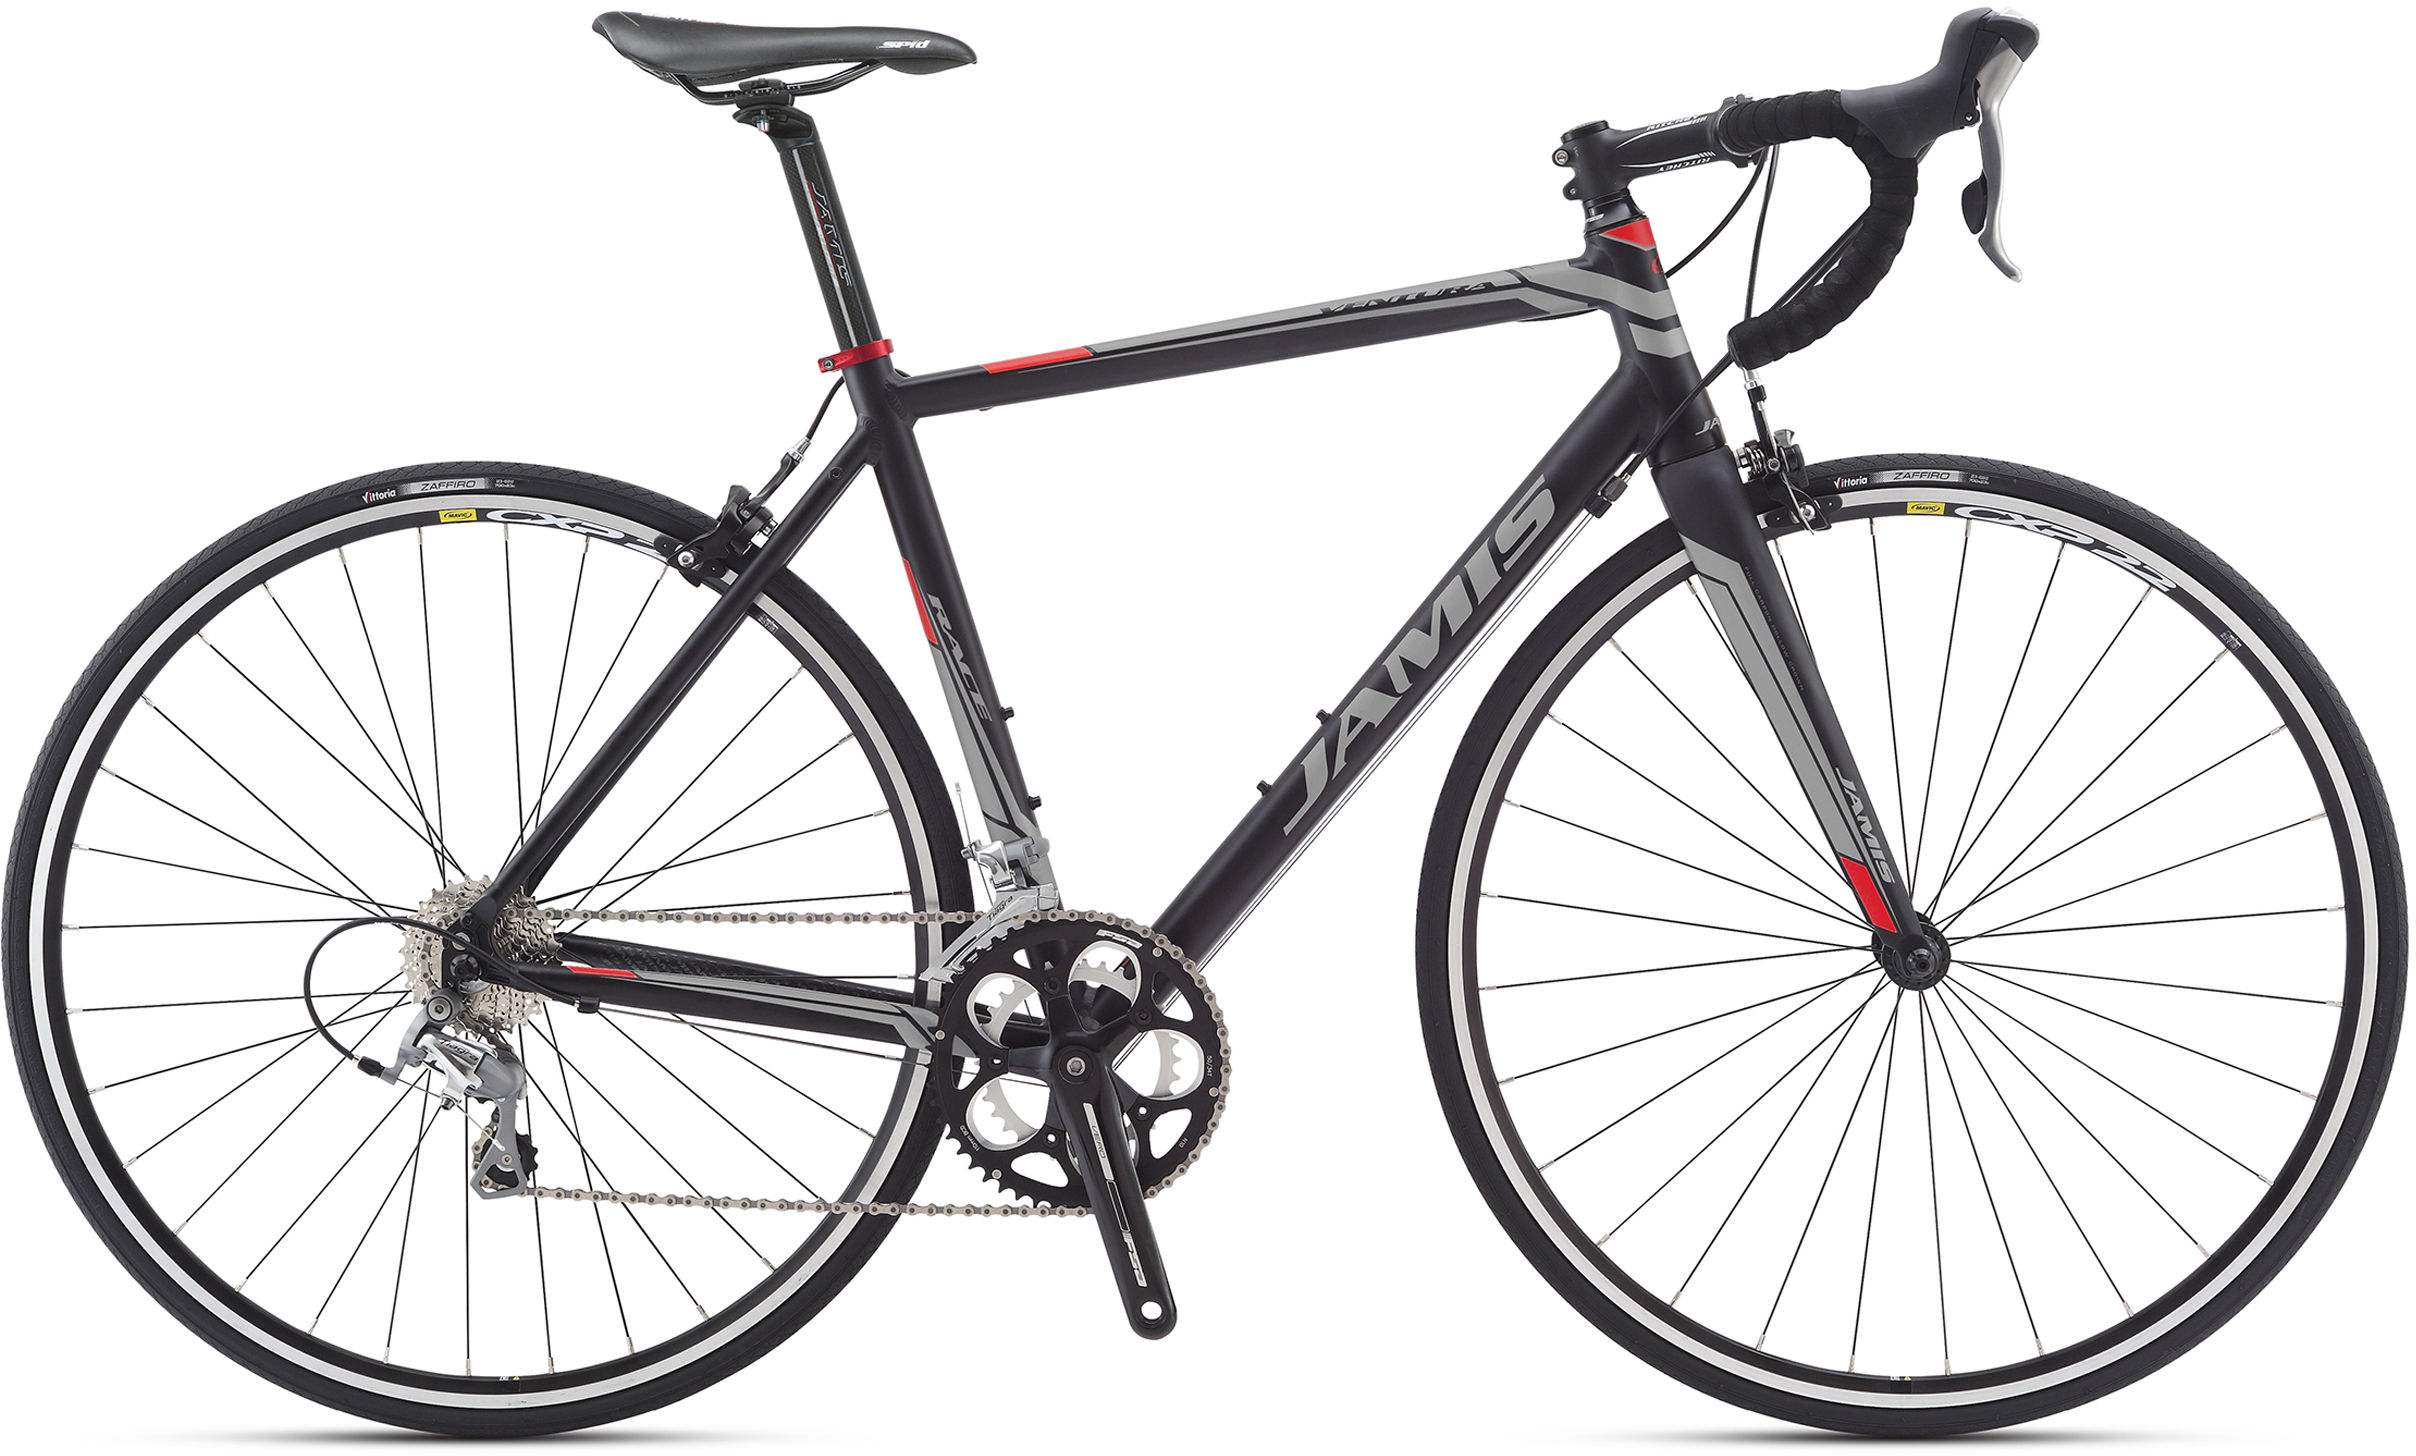 Mar 31, · So I am in the market for a new bike after my GT Avalanche was stolen I have come across a Jamis Dakar XC sport and it is within my budget.